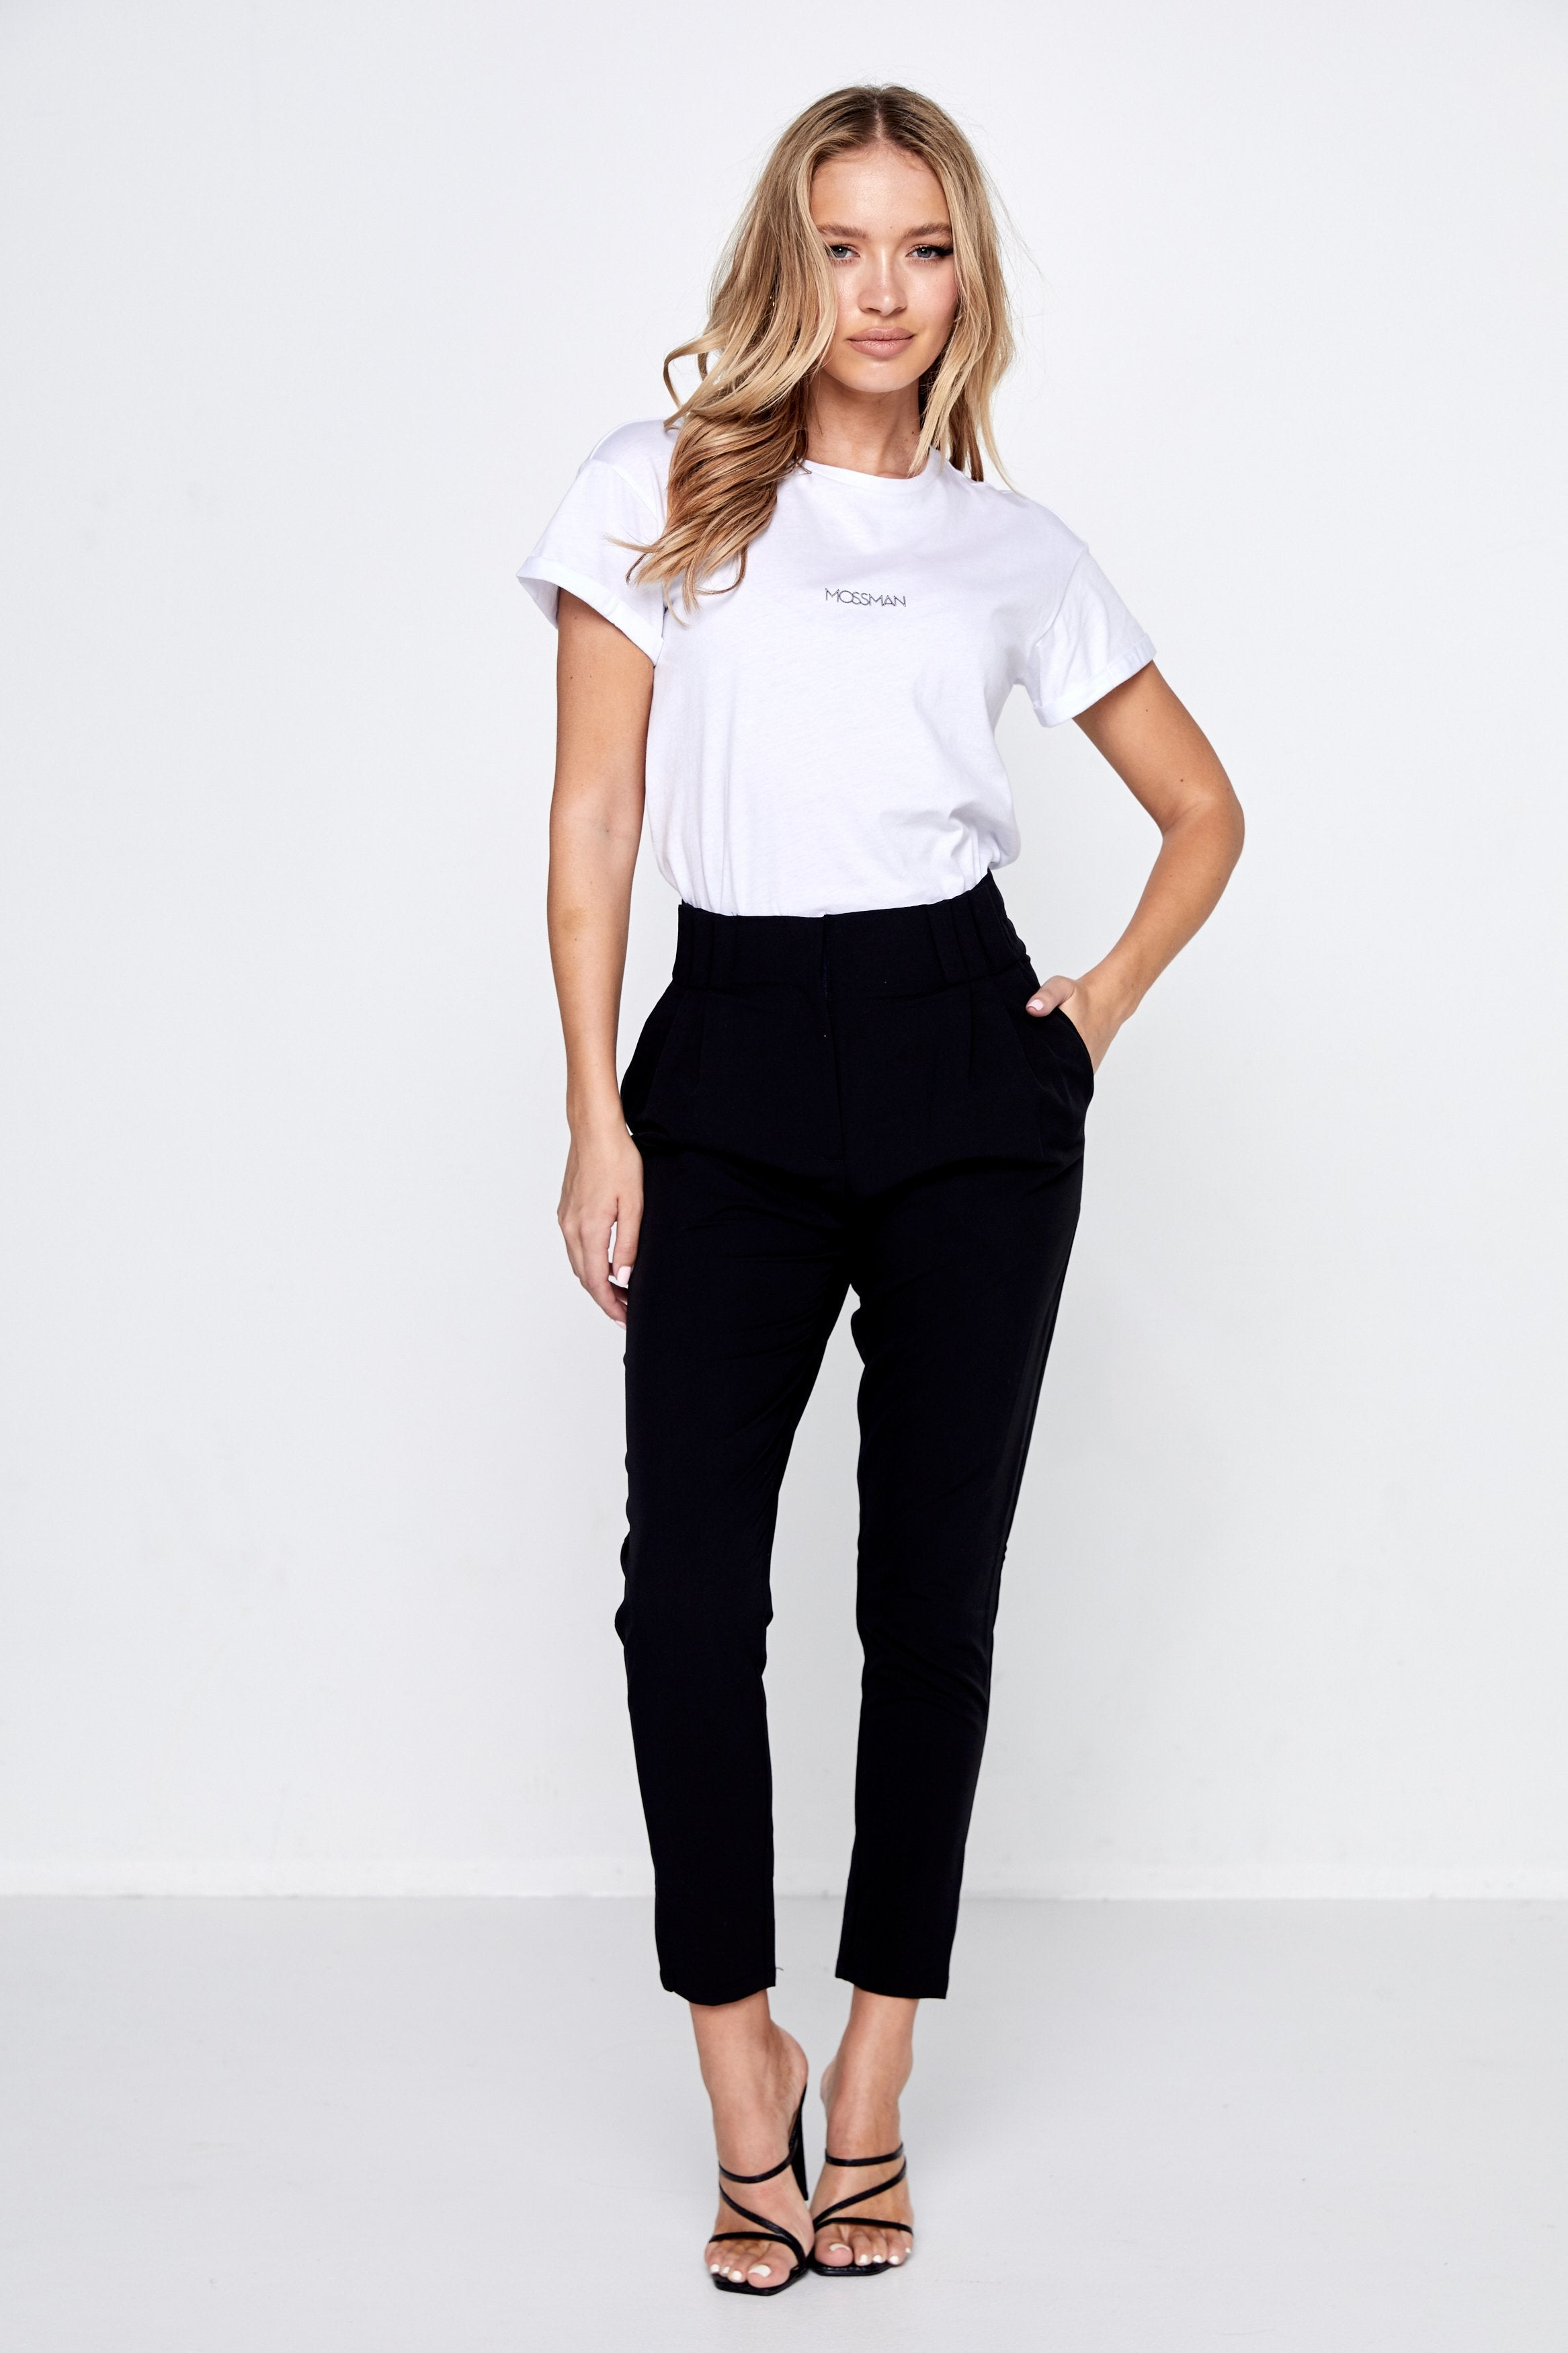 trans-seasonal pant with tapered leg, high-waist, black